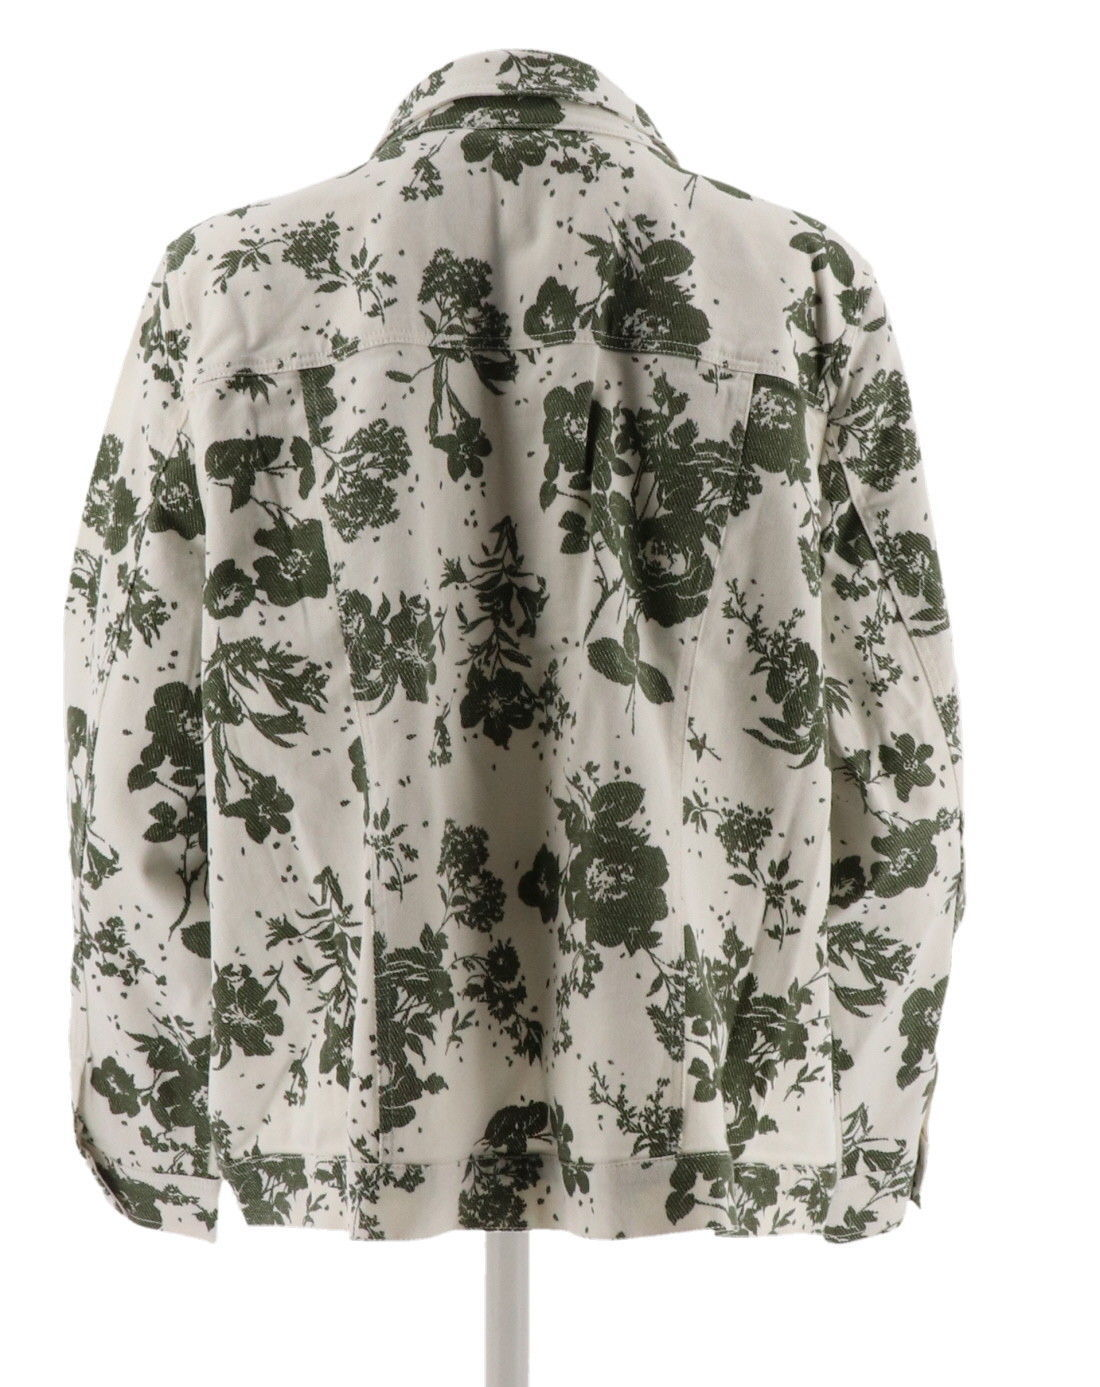 Denim & Co Floral Printed Twill Jean Jacket Olive M NEW A274027